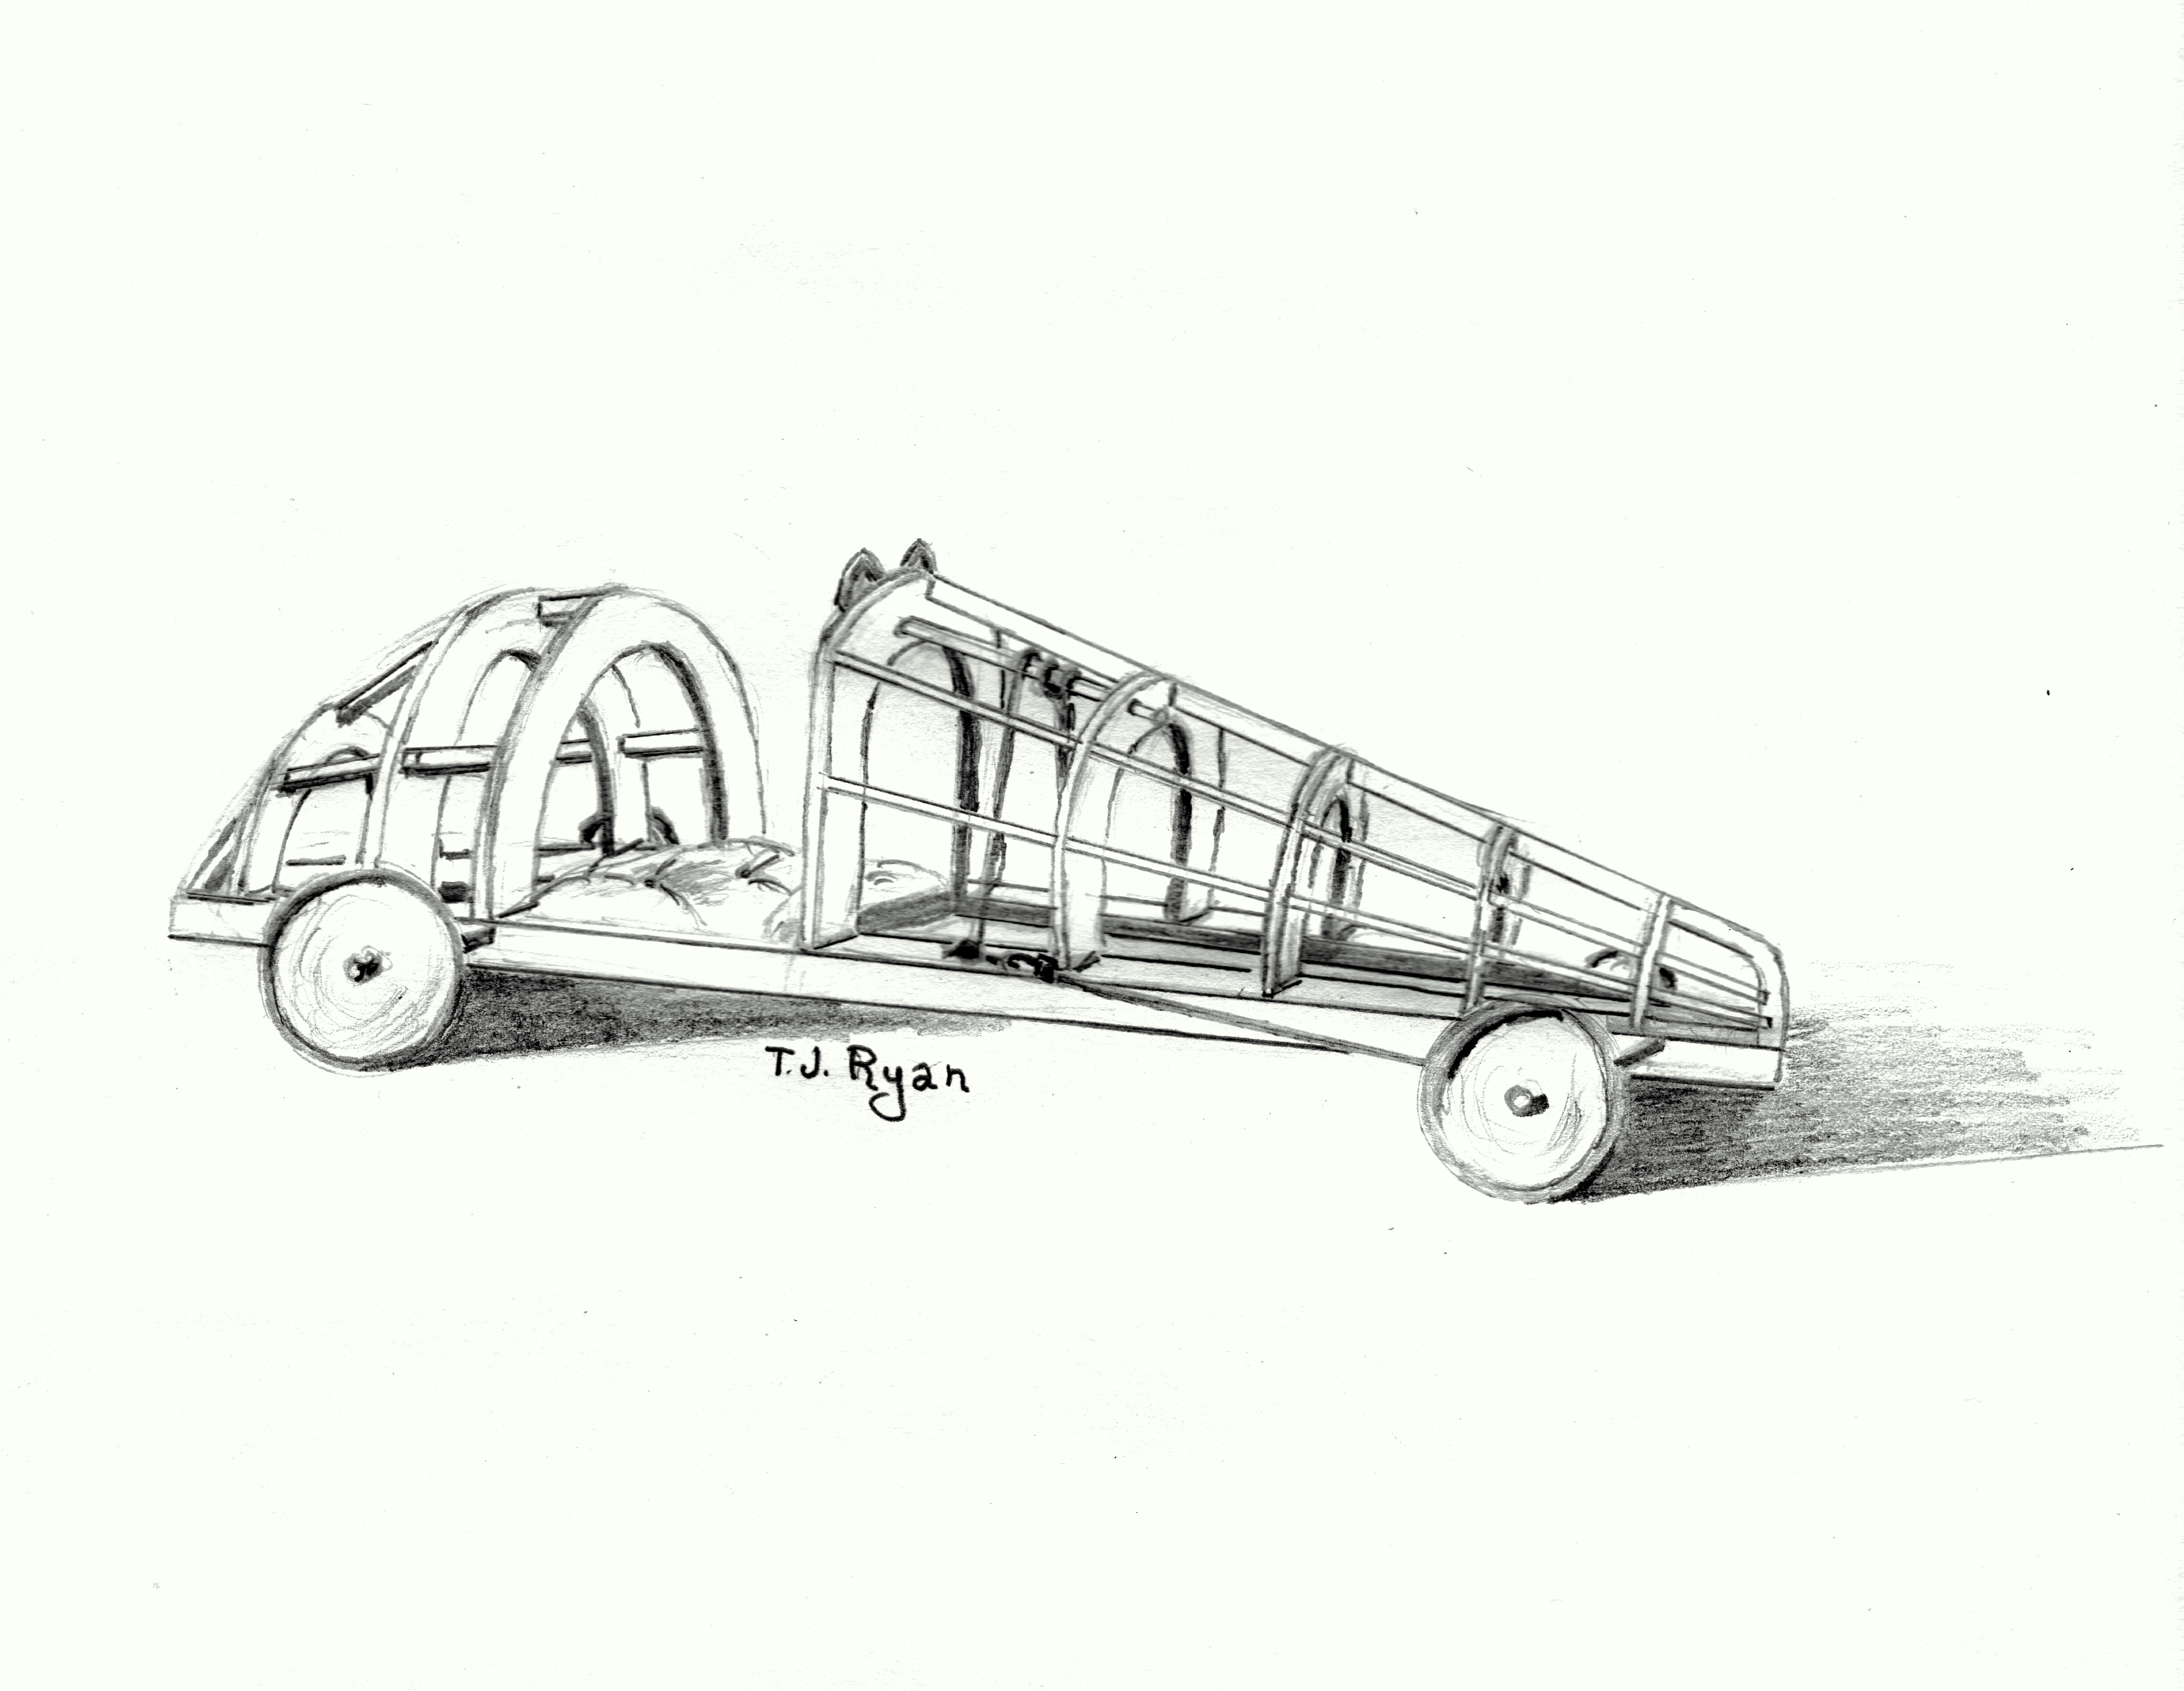 Steering Gear also Indy Race Car Coloring Pages To Print Sketch Templates furthermore Soap Box Derby Trolleys likewise Sul restauro della monarchia esecutiva della patria italiana besides Covrir1269. on 1940s race cars